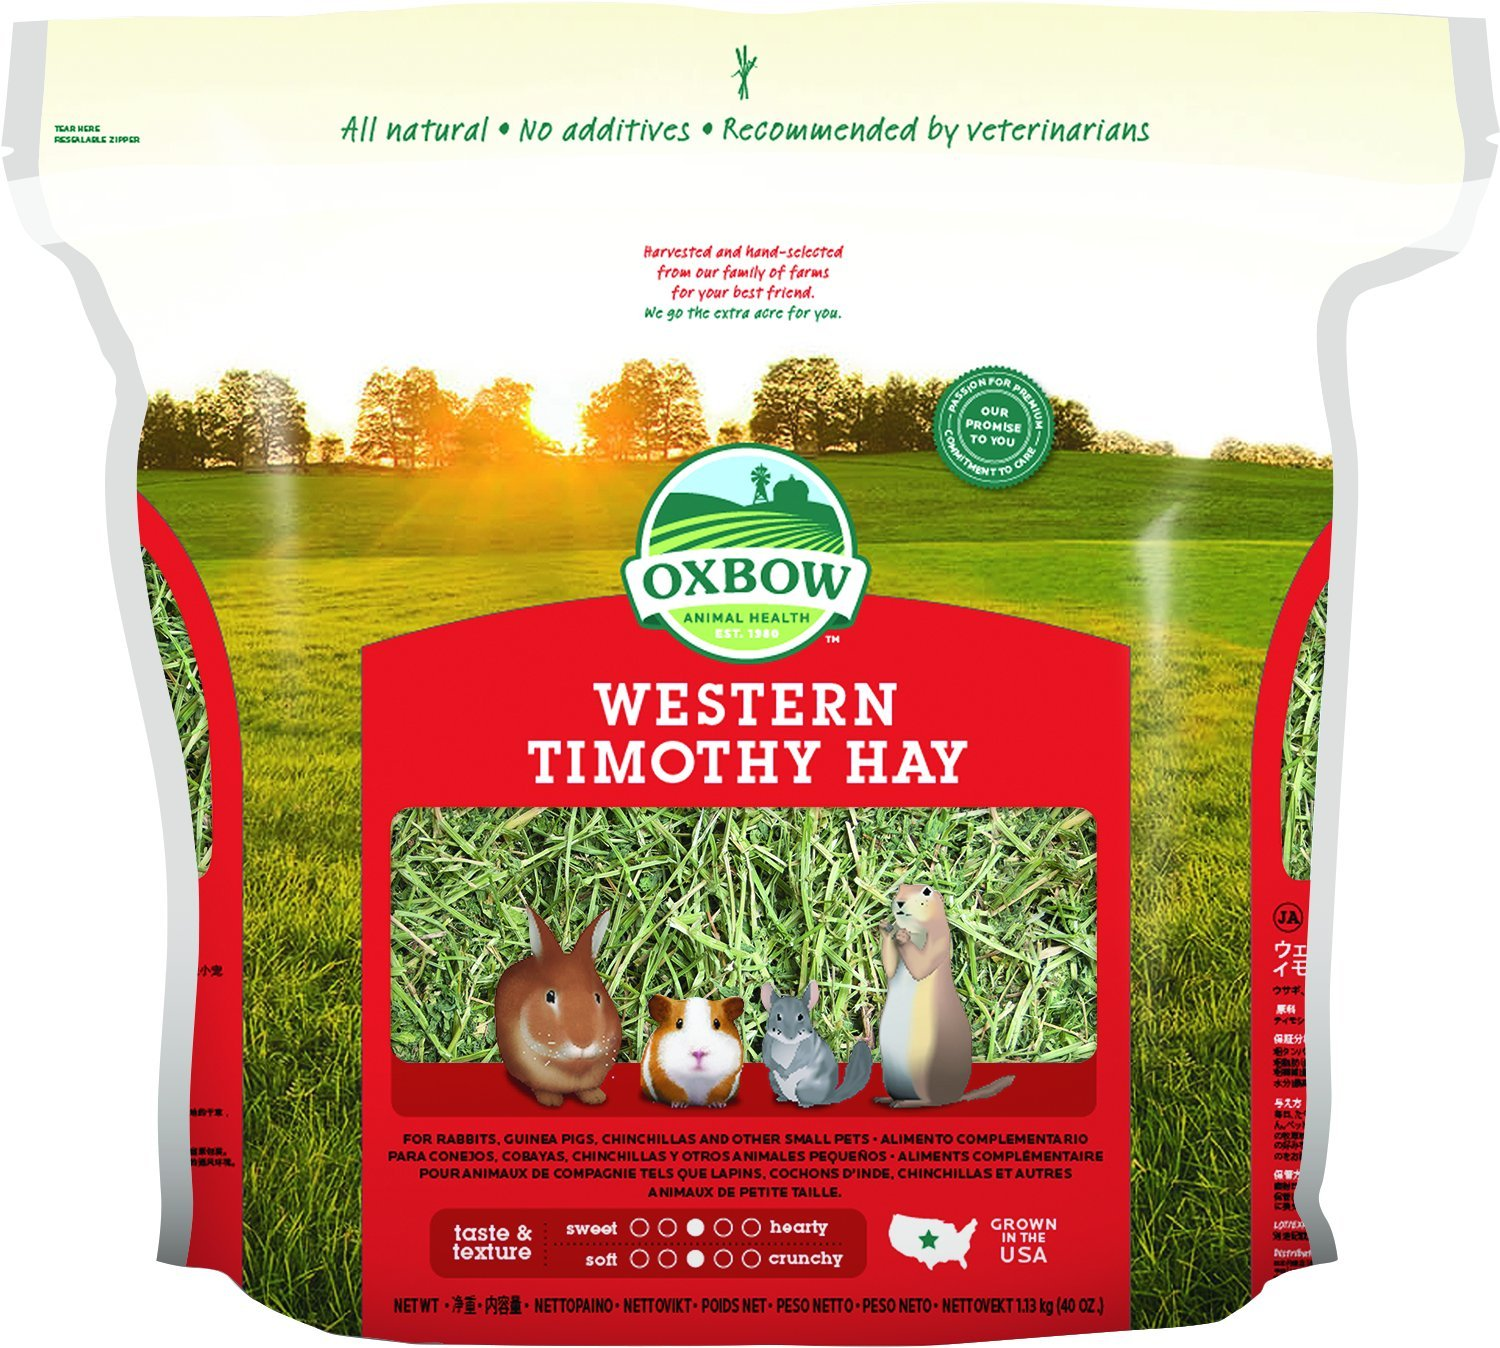 Feeds For Small Herbivores - Oxbow Western Timothy Hay 1.1kg Oxbow Animal Health 744845402758